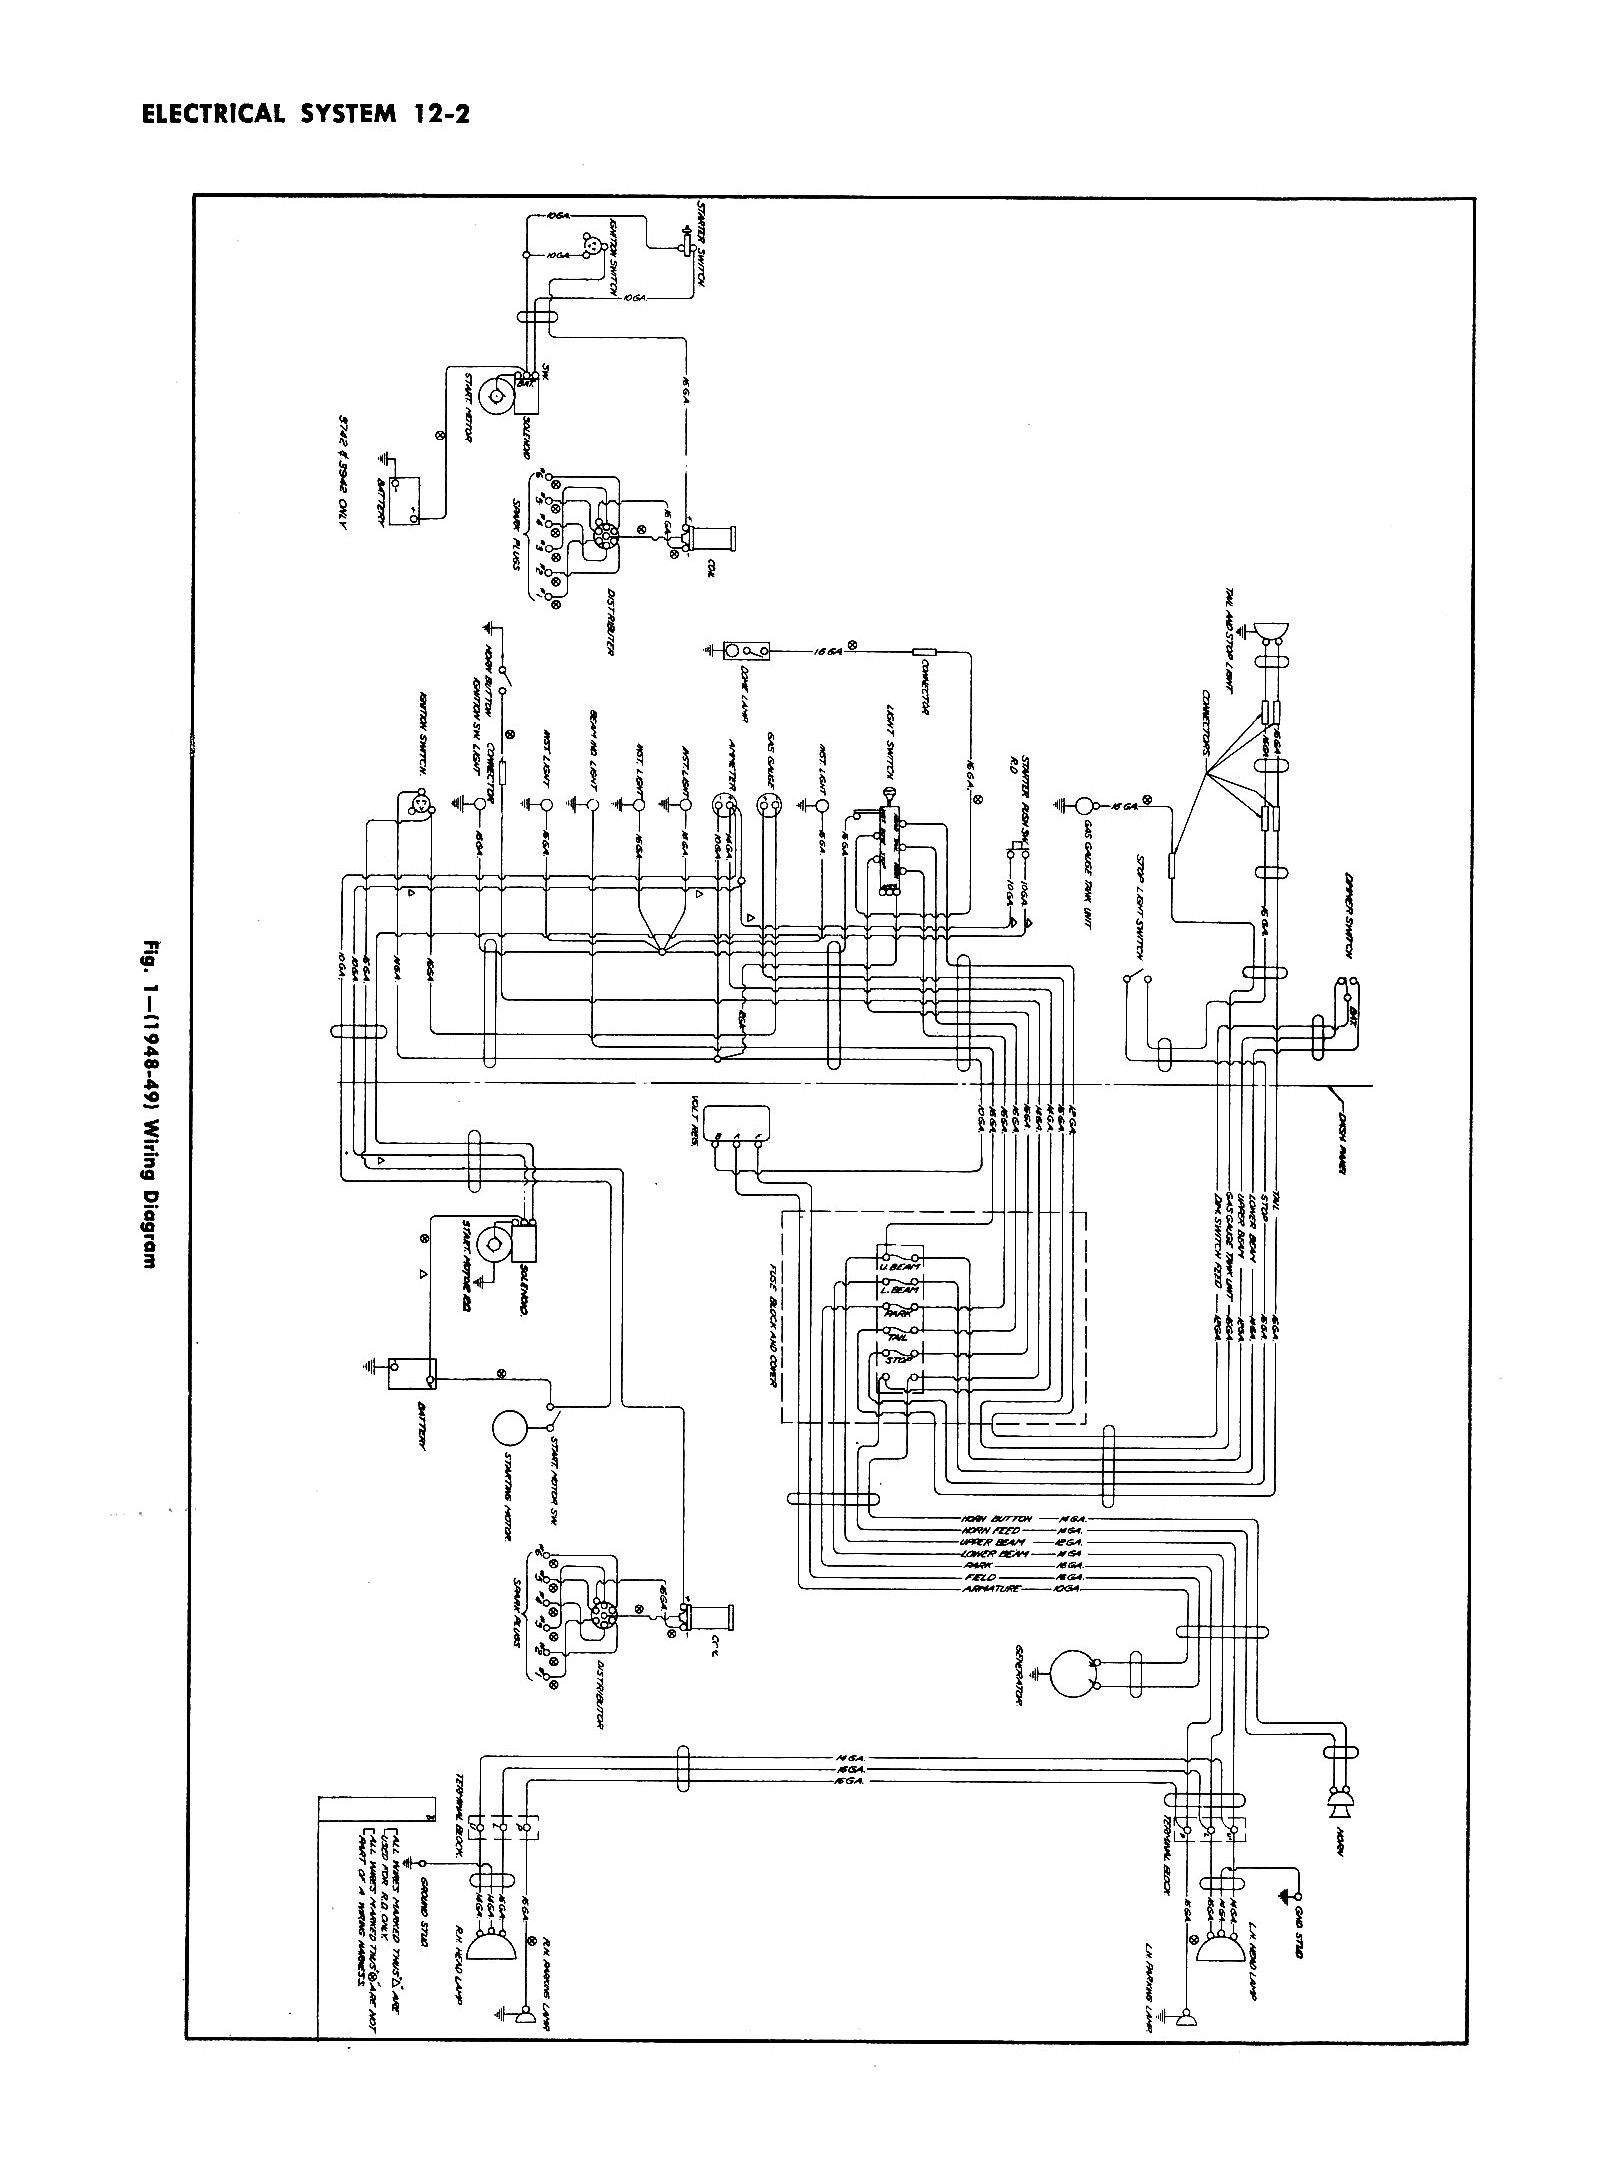 Chevy Wiring Diagrams 57 Chevy Headlight Switch Wiring Diagram 1949 Chevy  Truck Headlight Switch Wiring